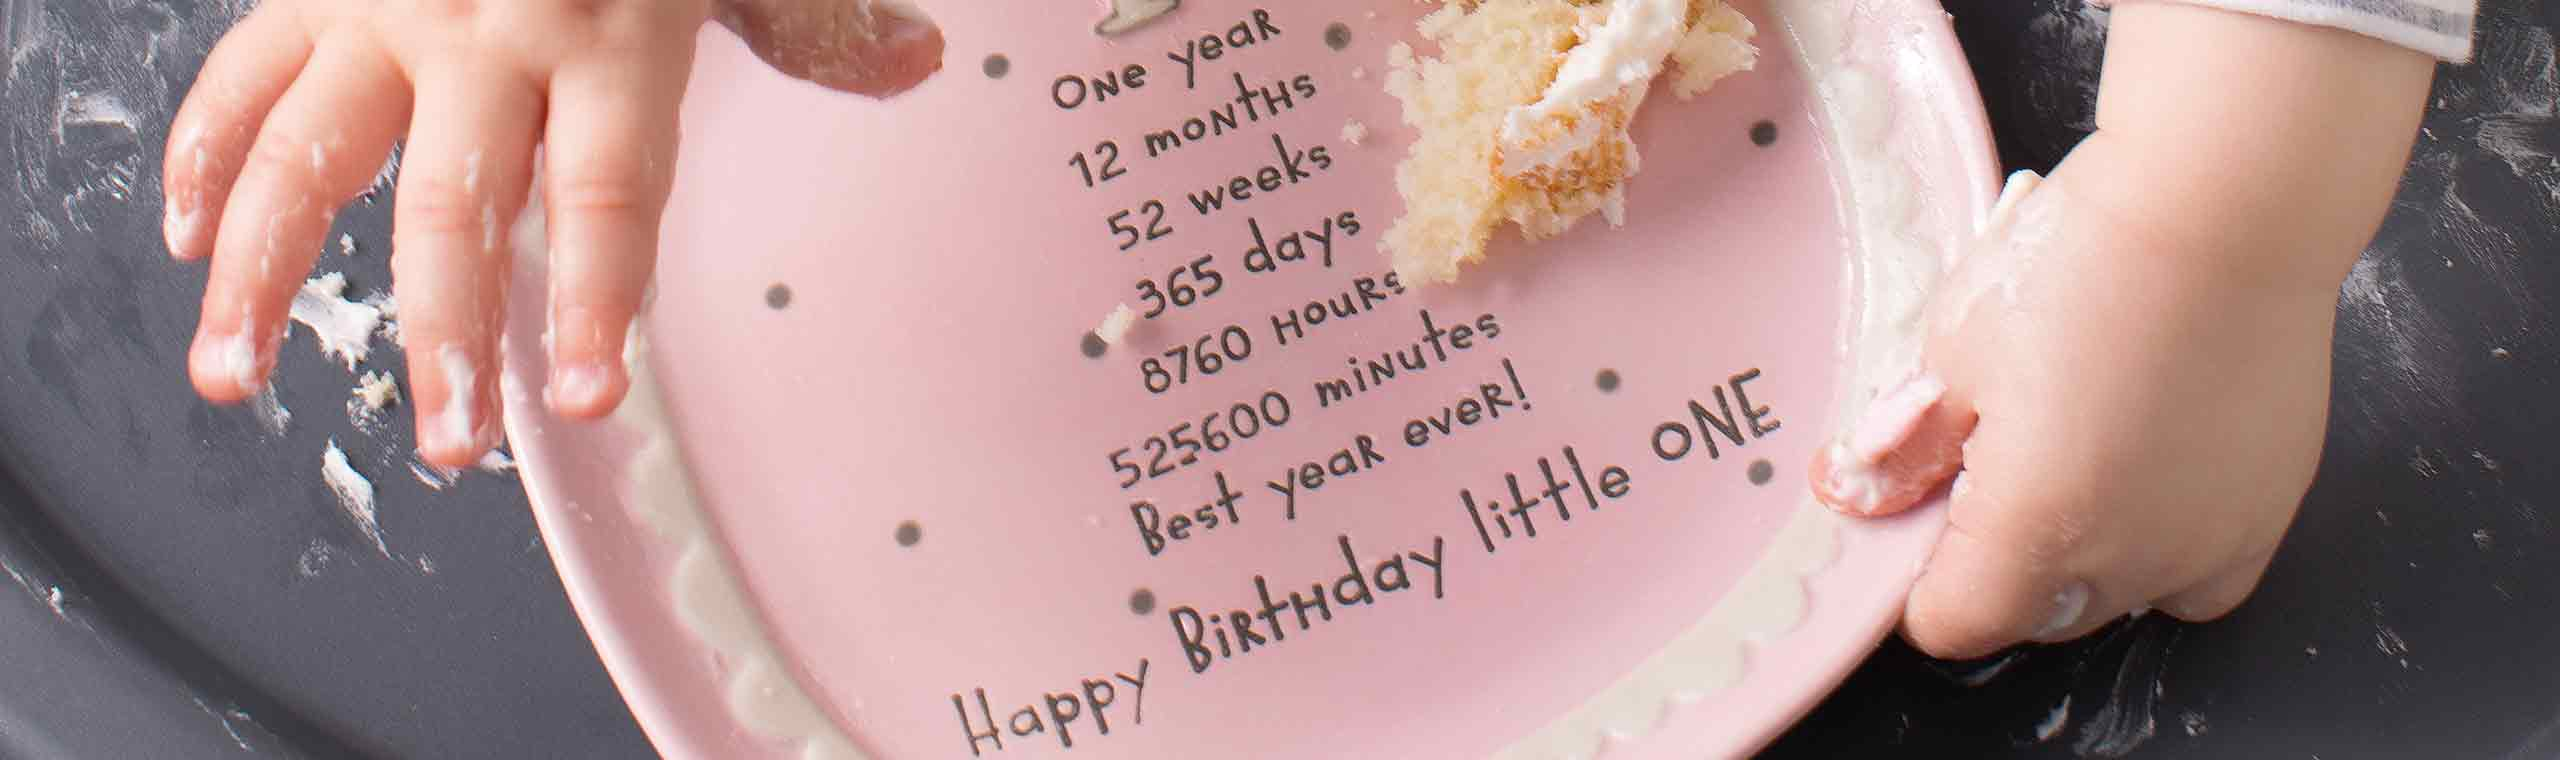 a baby eating cake on a pink plate about a babys first birthday